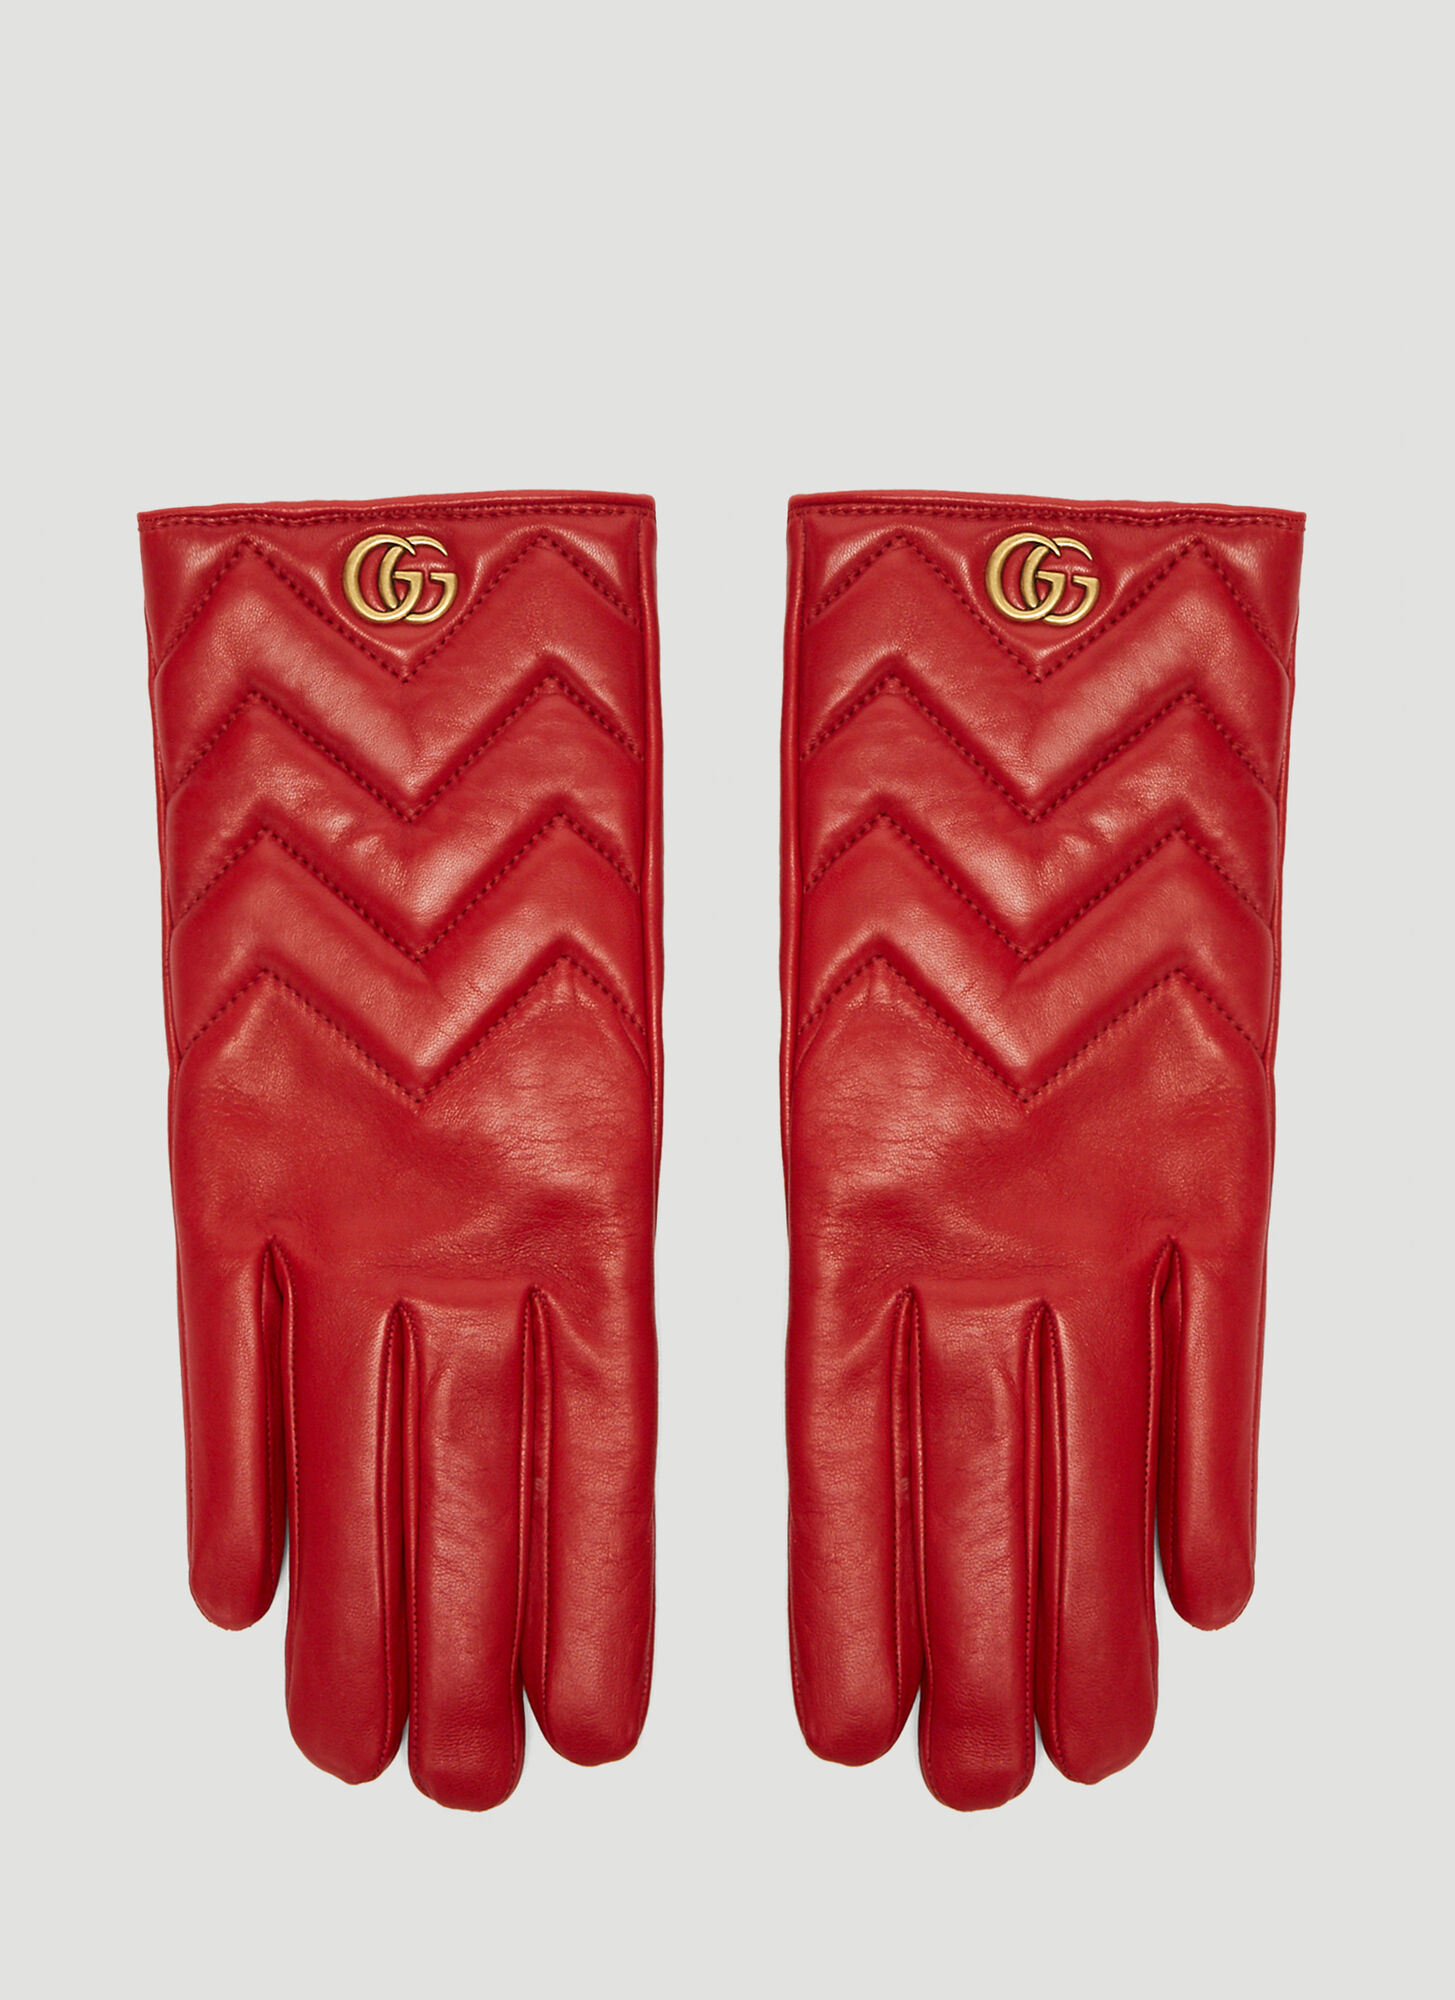 Gucci Marmont Chevron Leather Gloves in Red